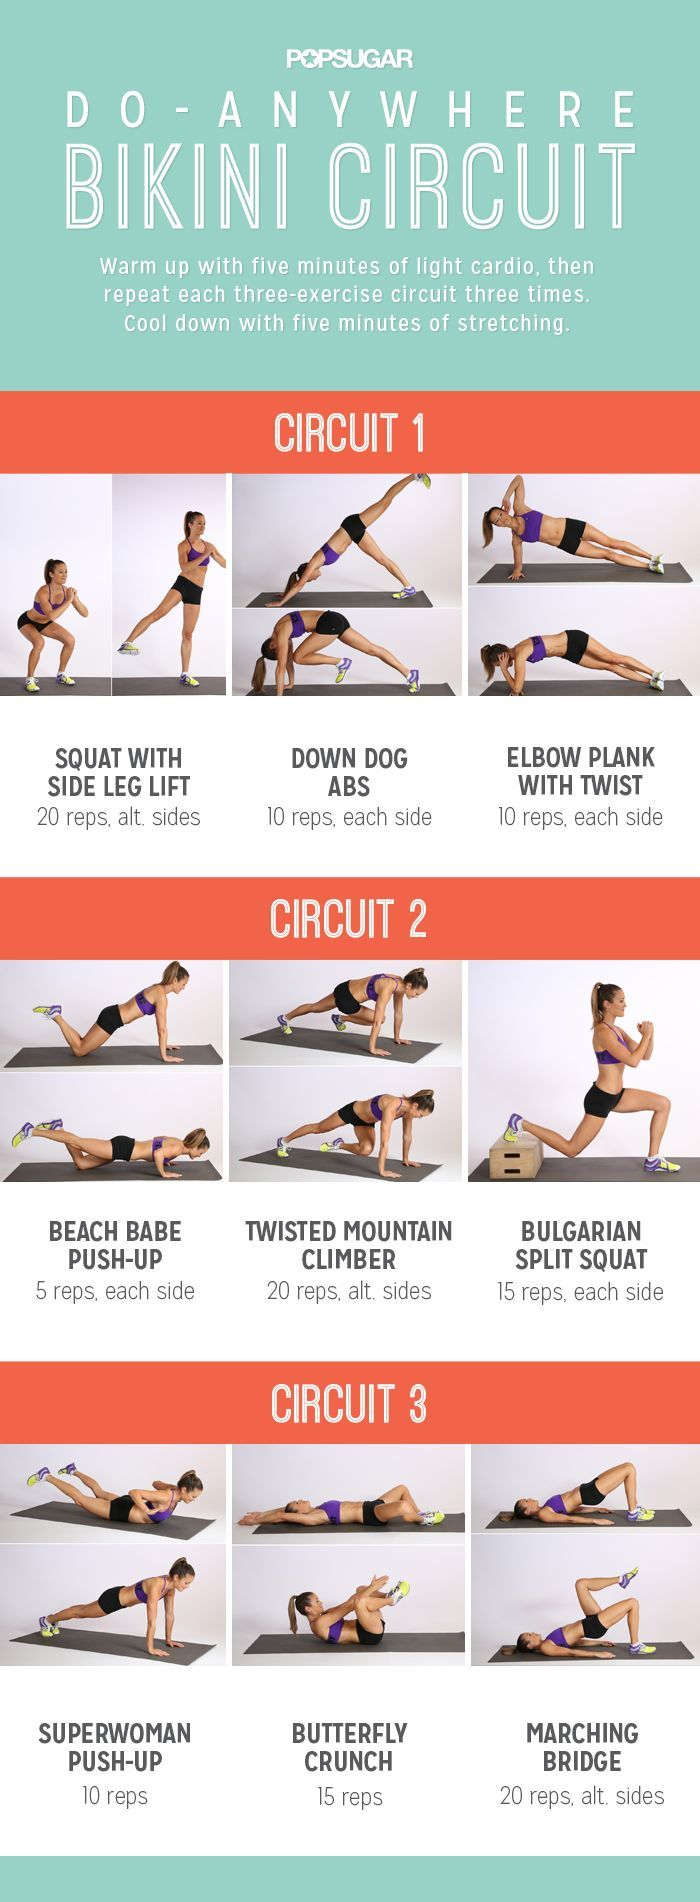 I like core exercises like this.